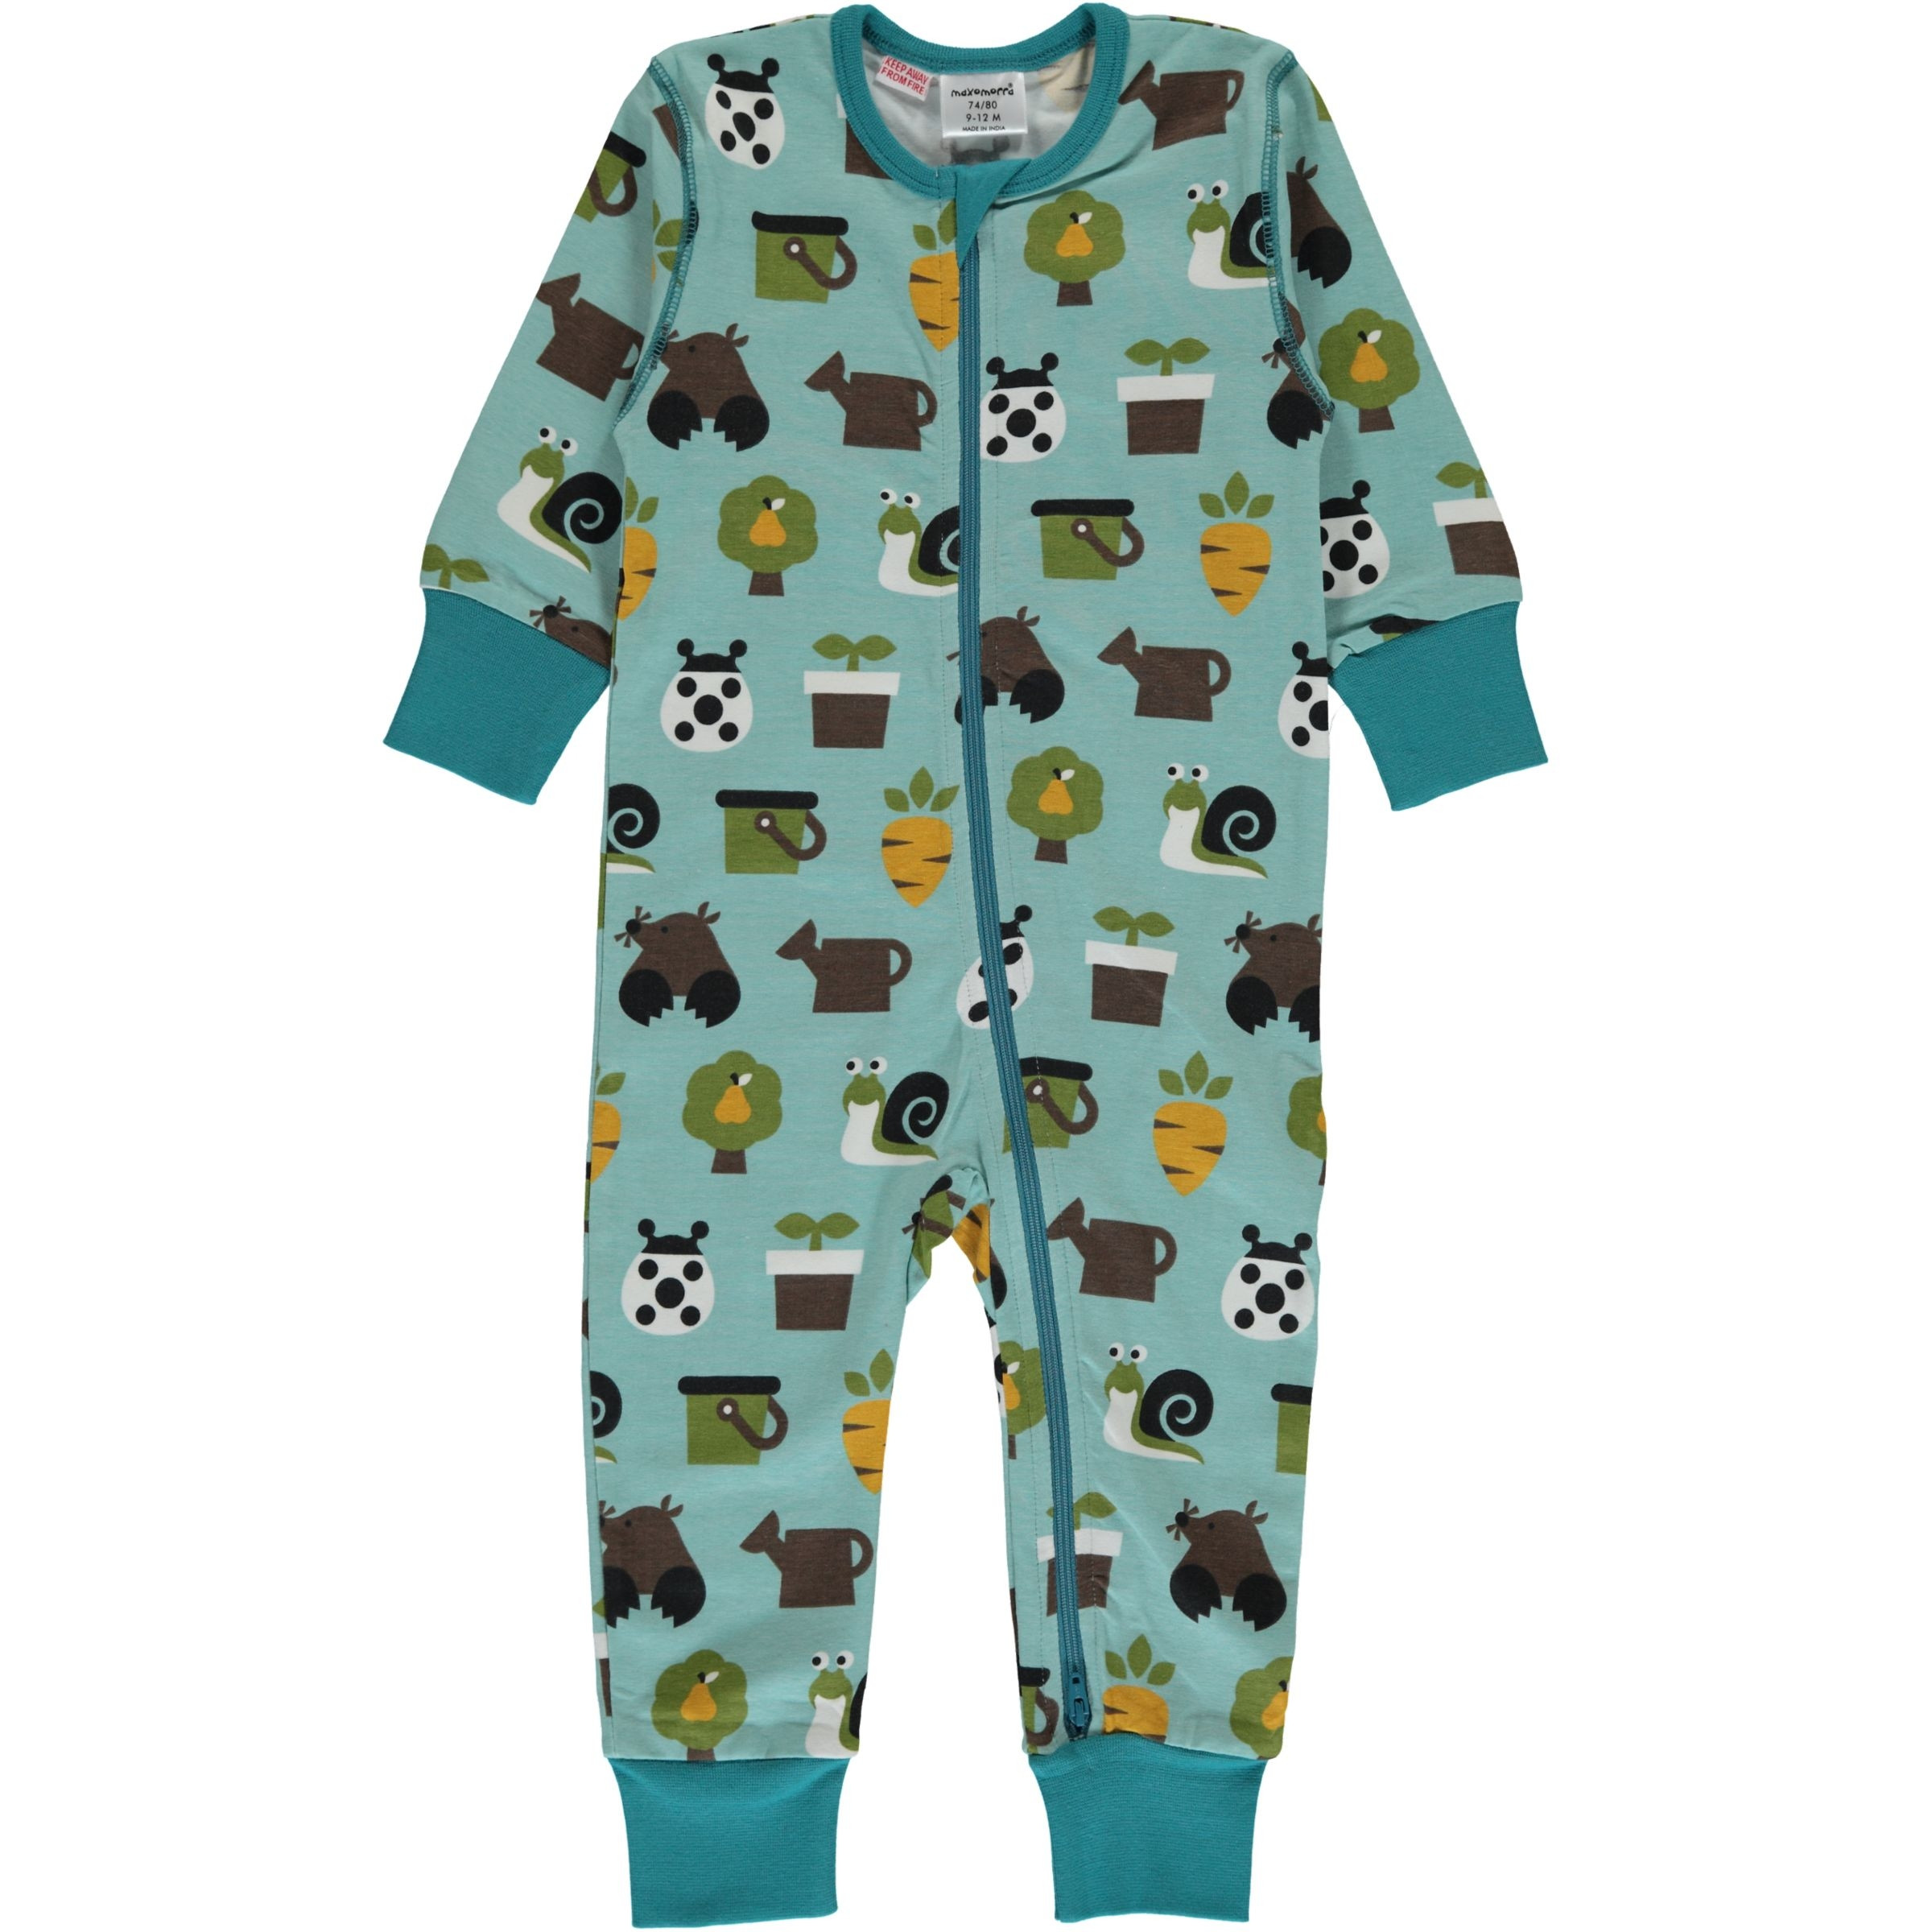 Maxomorra Garden Rompersuit Long Sleeved